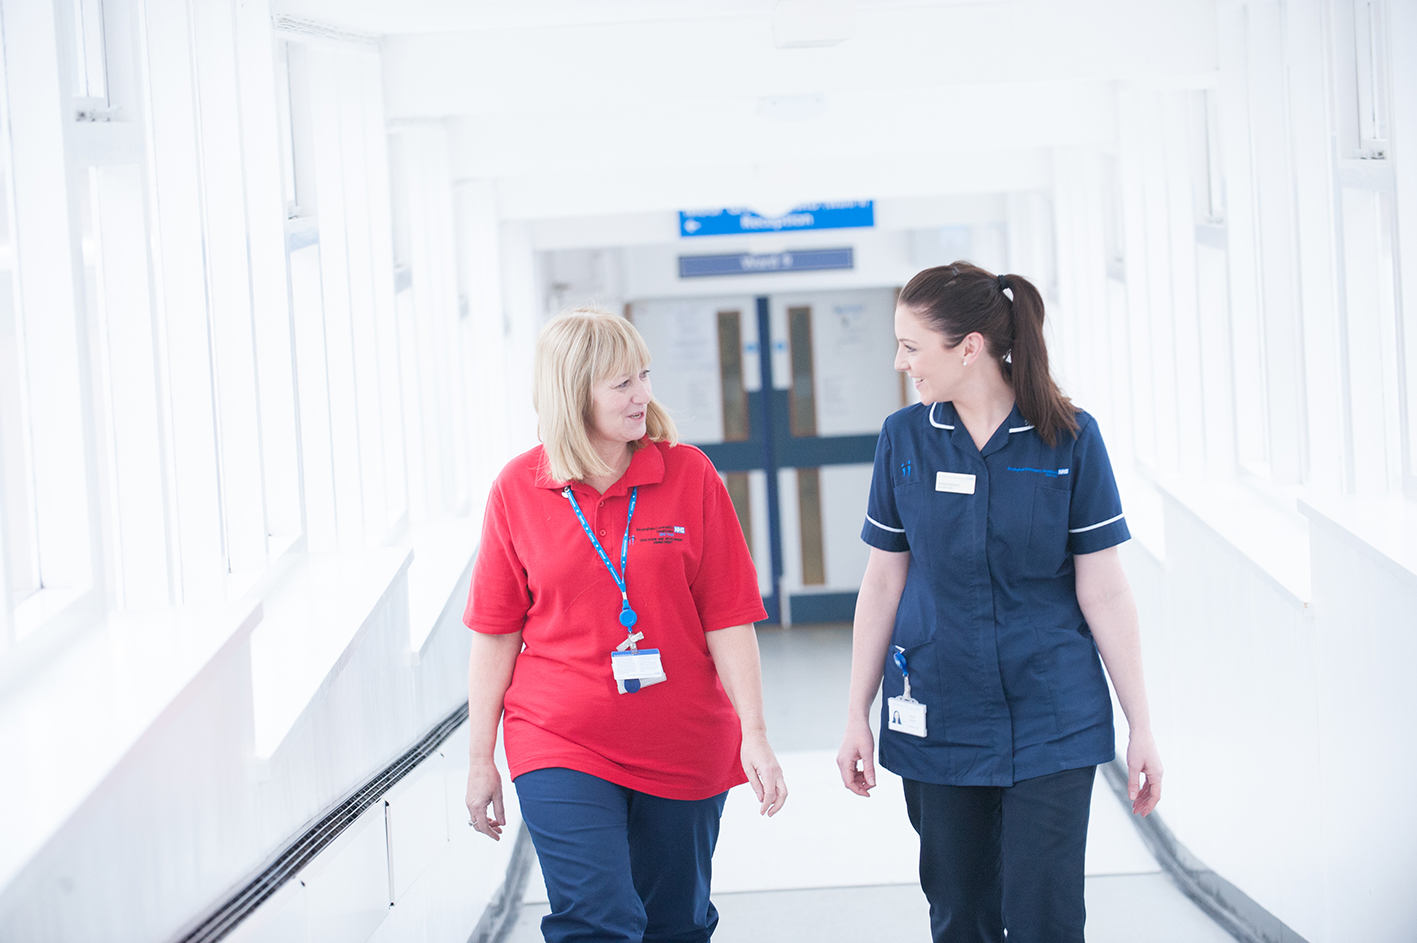 Two nurses walking down hospital corridor smiling at each other